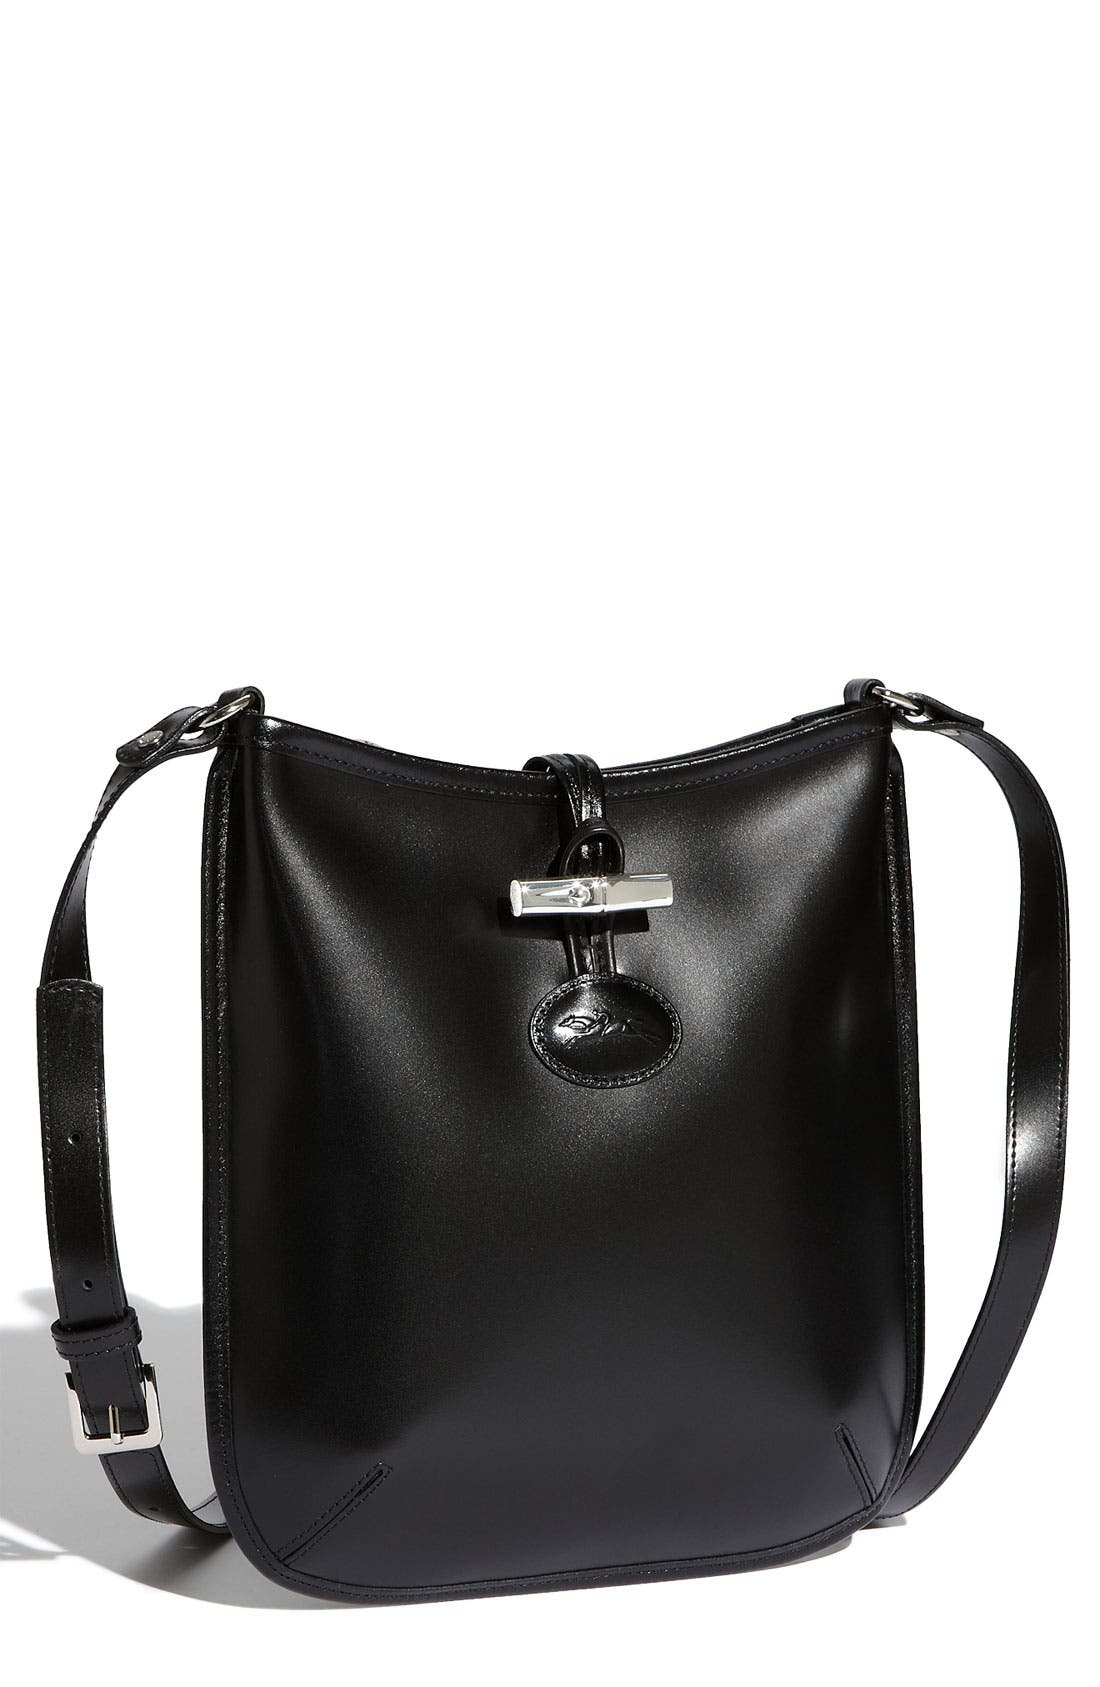 Alternate Image 1 Selected - Longchamp 'Roseau' Crossbody Bag